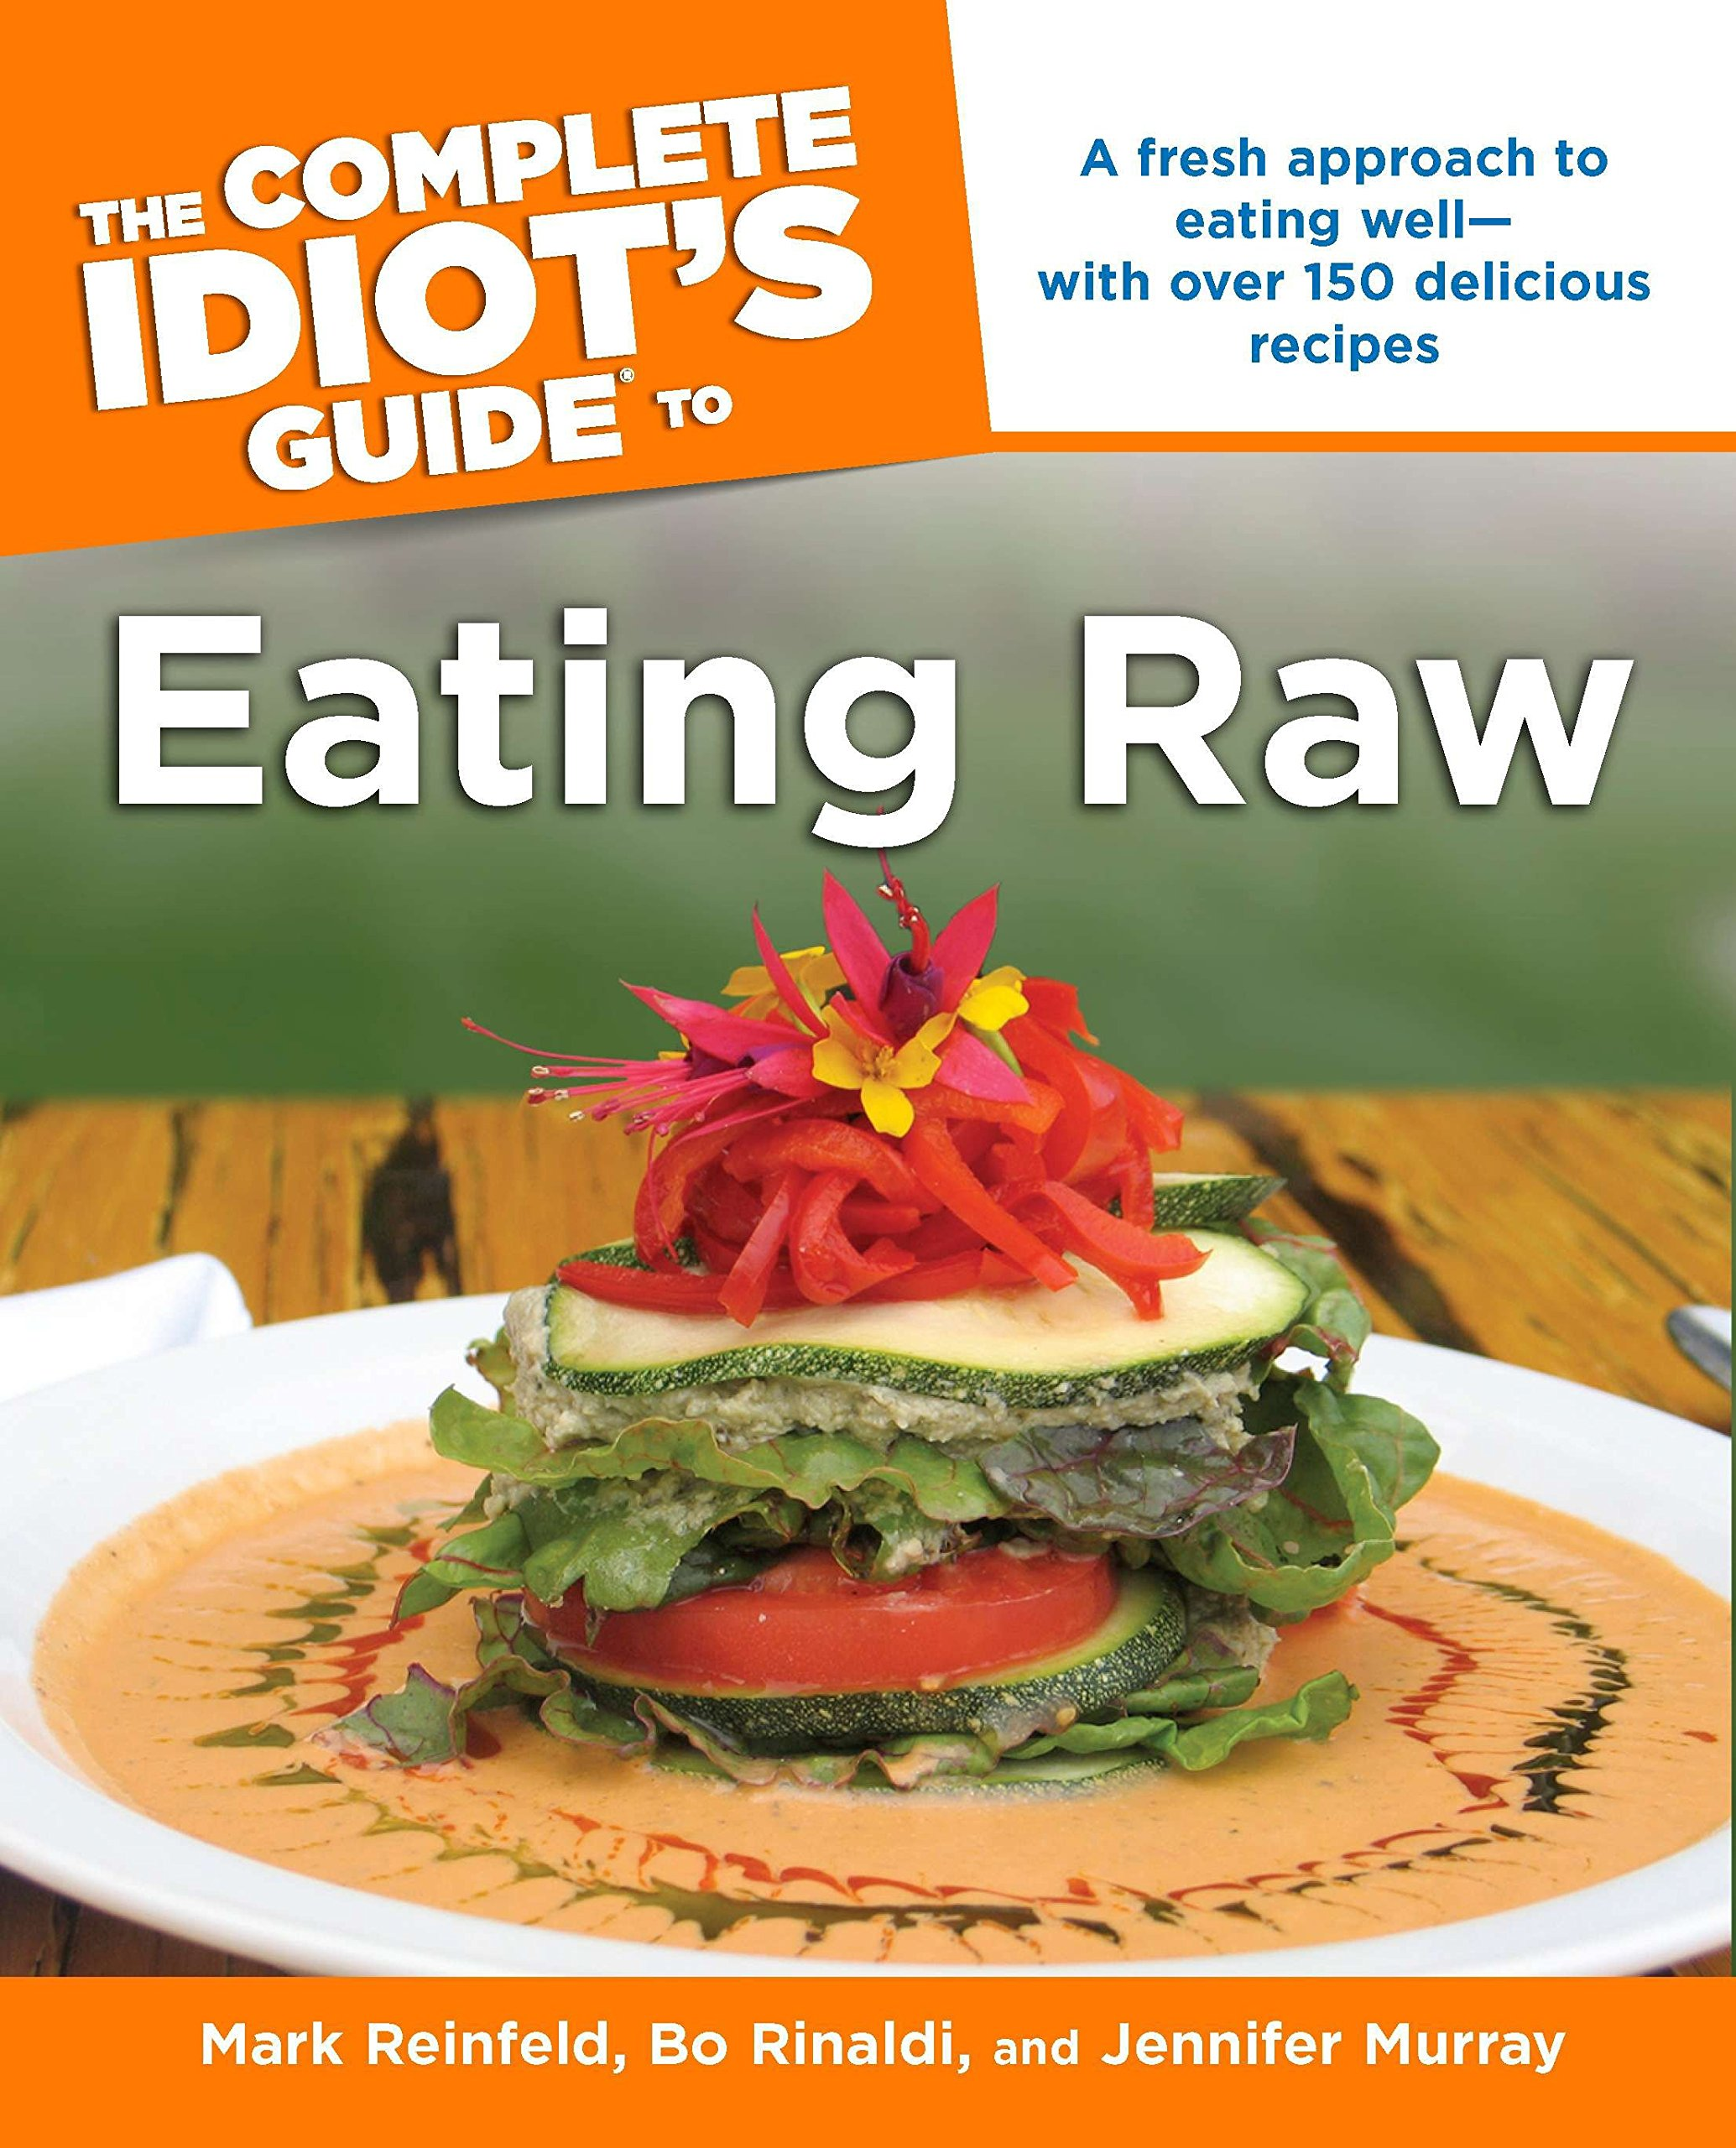 Read Online The Complete Idiot's Guide to Eating Raw: A Fresh Approach to Eating Well with Over 150 Delicious Recipes (Complete Idiot's Guides) pdf